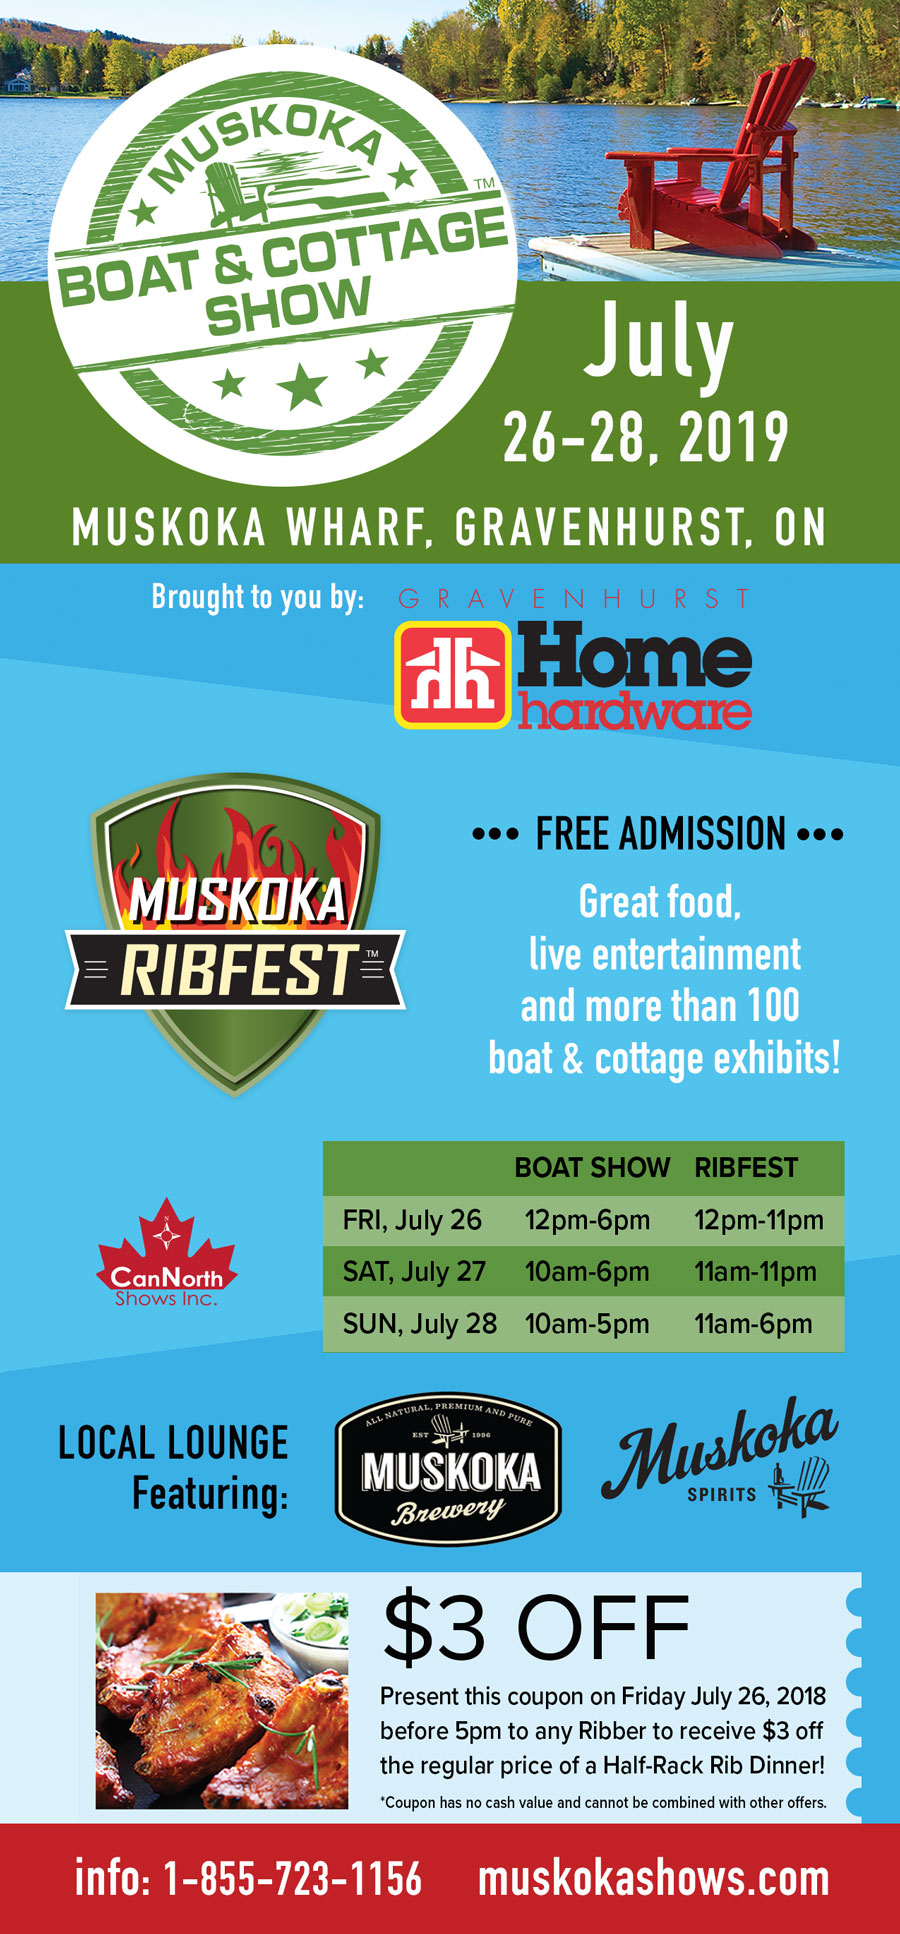 Muskoka Boat and Cottage Show and Muskoka RibFest | July 26-28, 2019